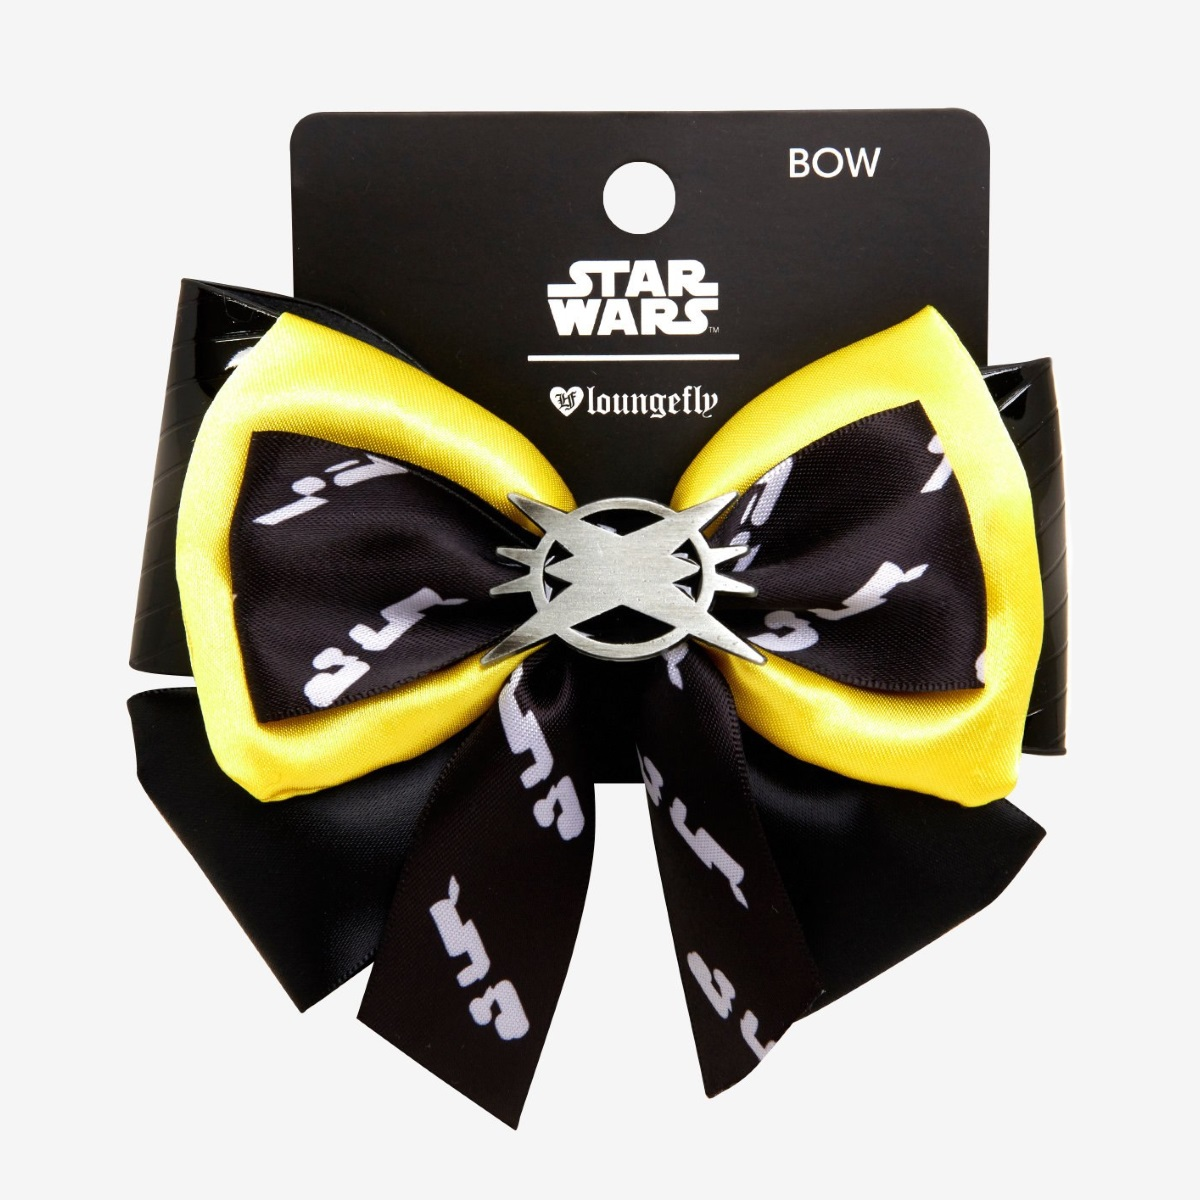 Loungefly x Star Wars Solo Lando Calrissian Cosplay Style Hair Bow at Hot Topic